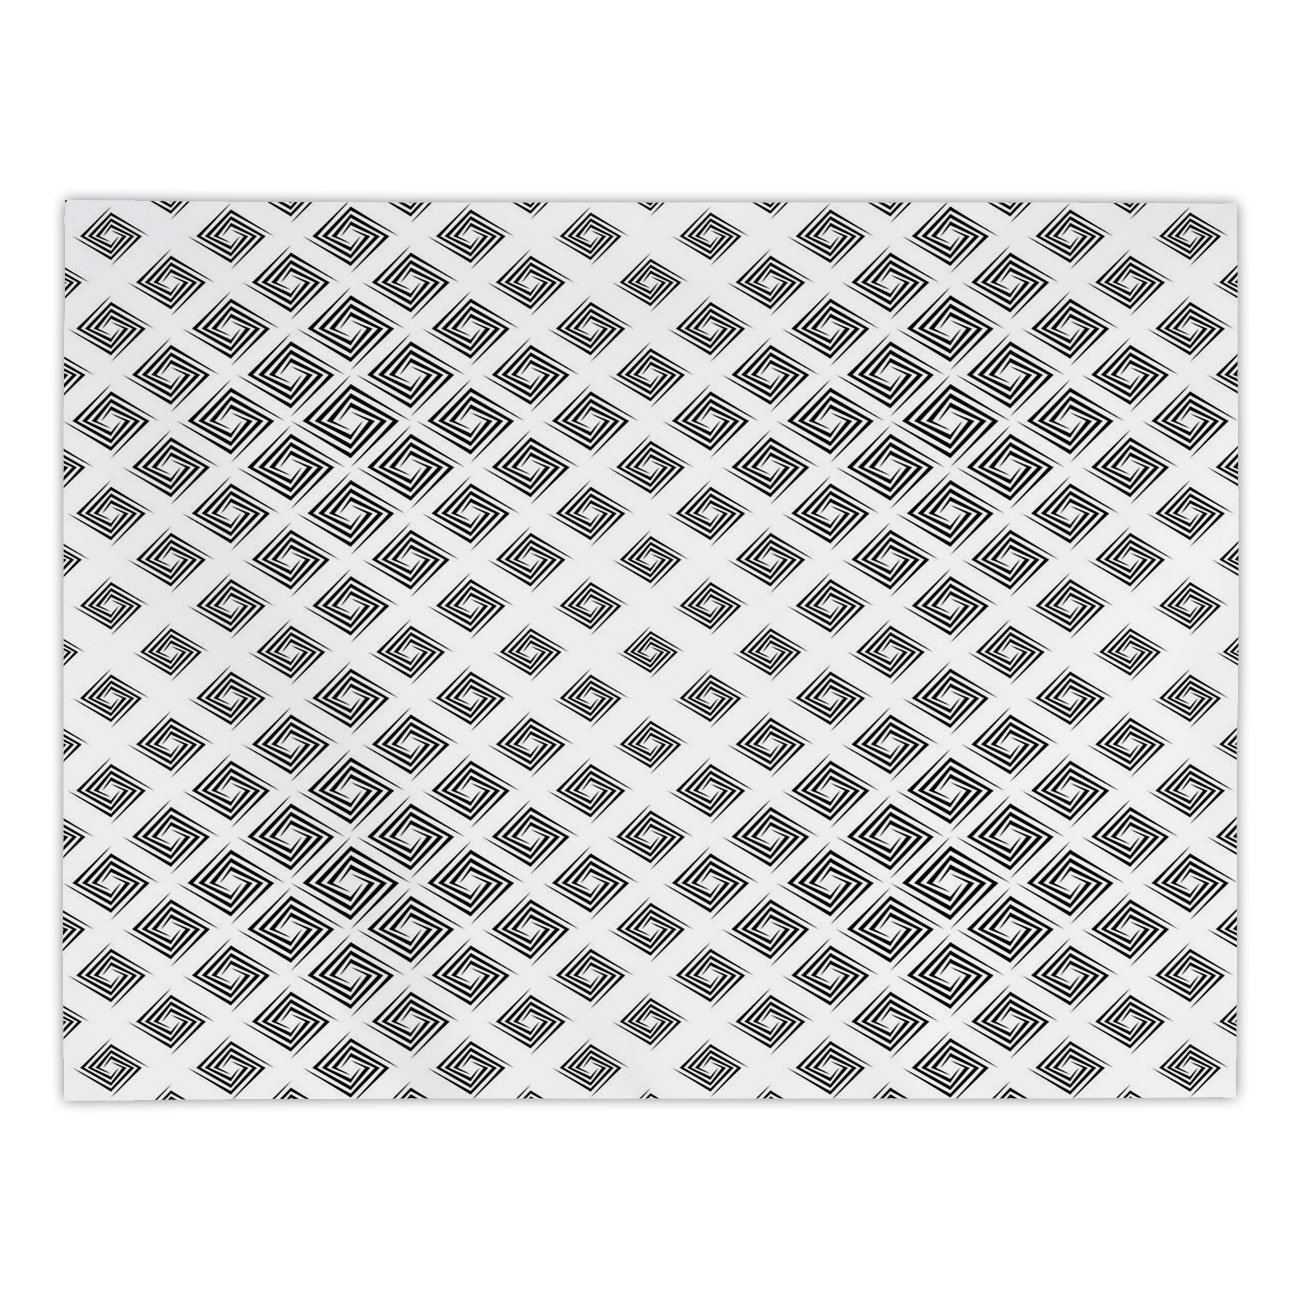 iPrint Rectangular Satin Tablecloth,Abstract,Minimalist Geometric Diamond Shaped Inner Square Infinite Symmetric Lines Pattern Decorative,Black White,Dining Room Kitchen Table Cloth Cover